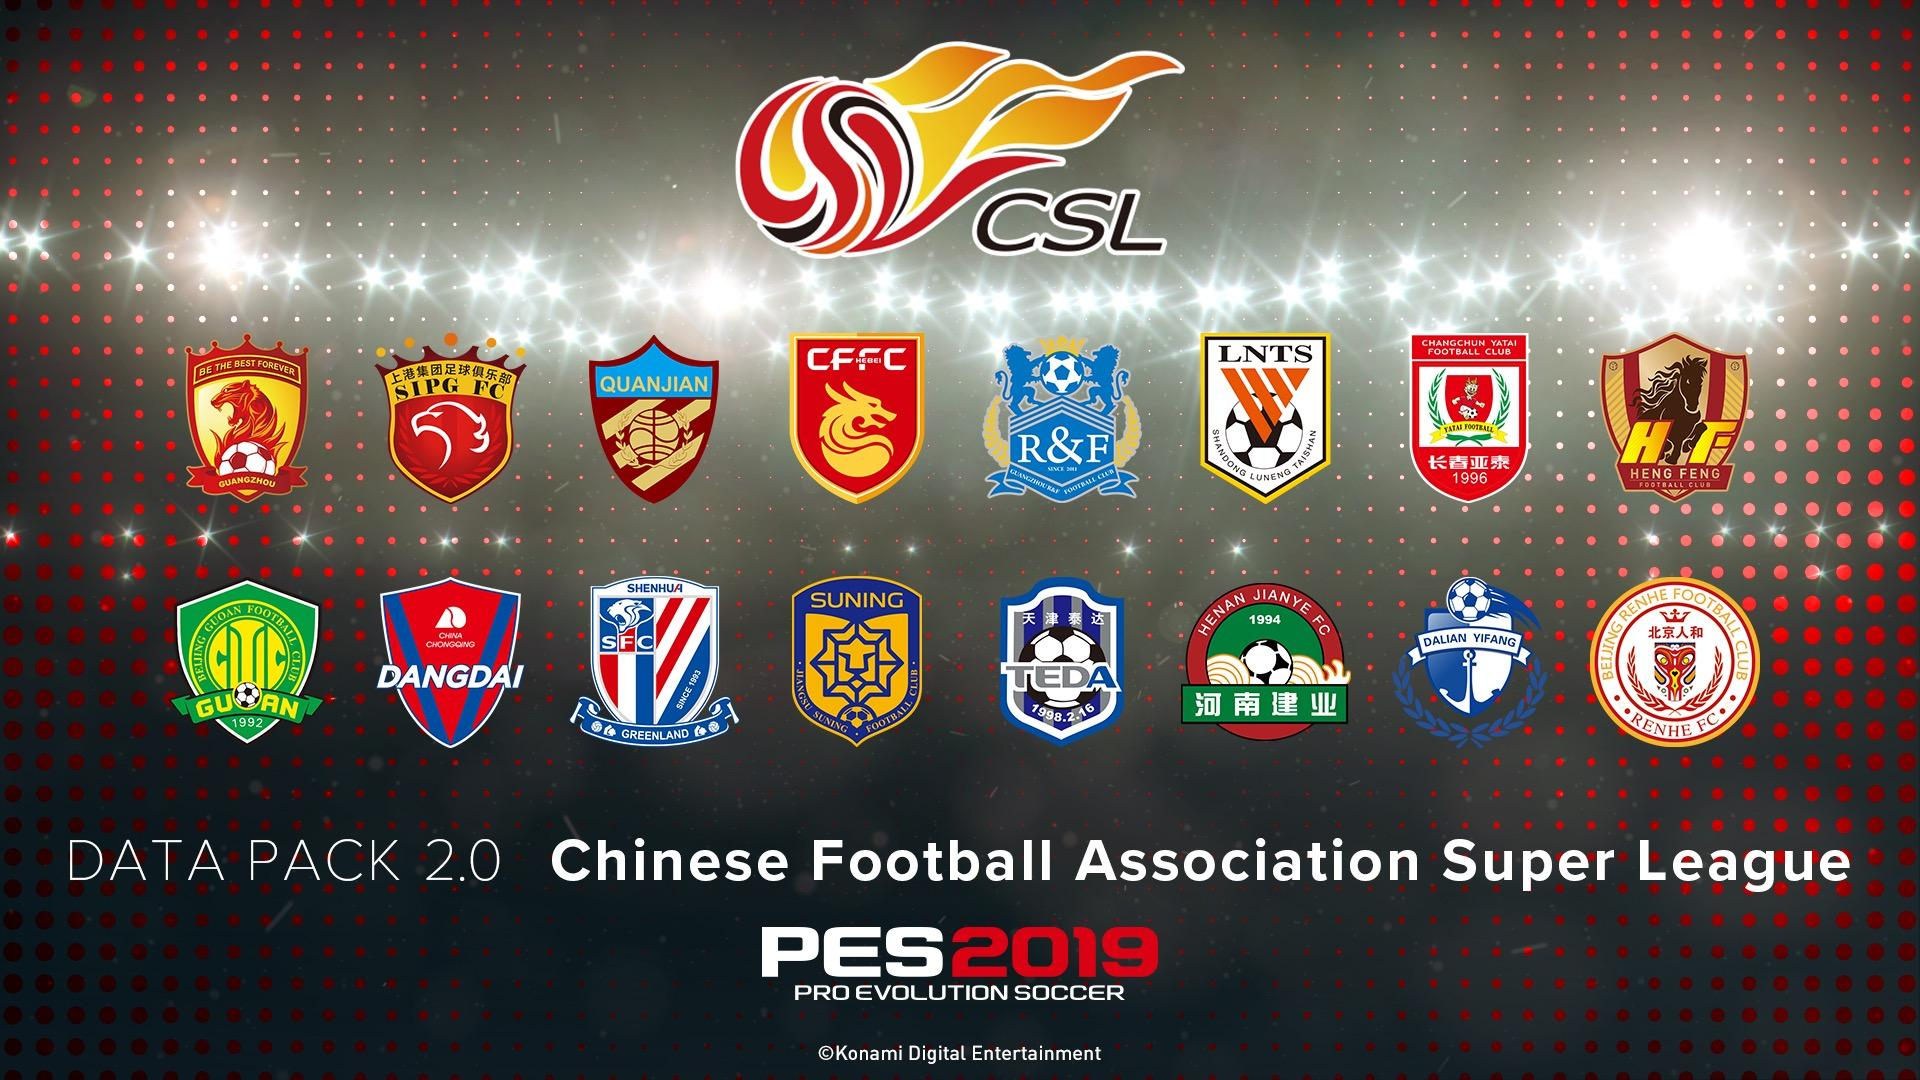 PES 2019 Data Pack 2 0 Adds 100 New Player Faces and CFA